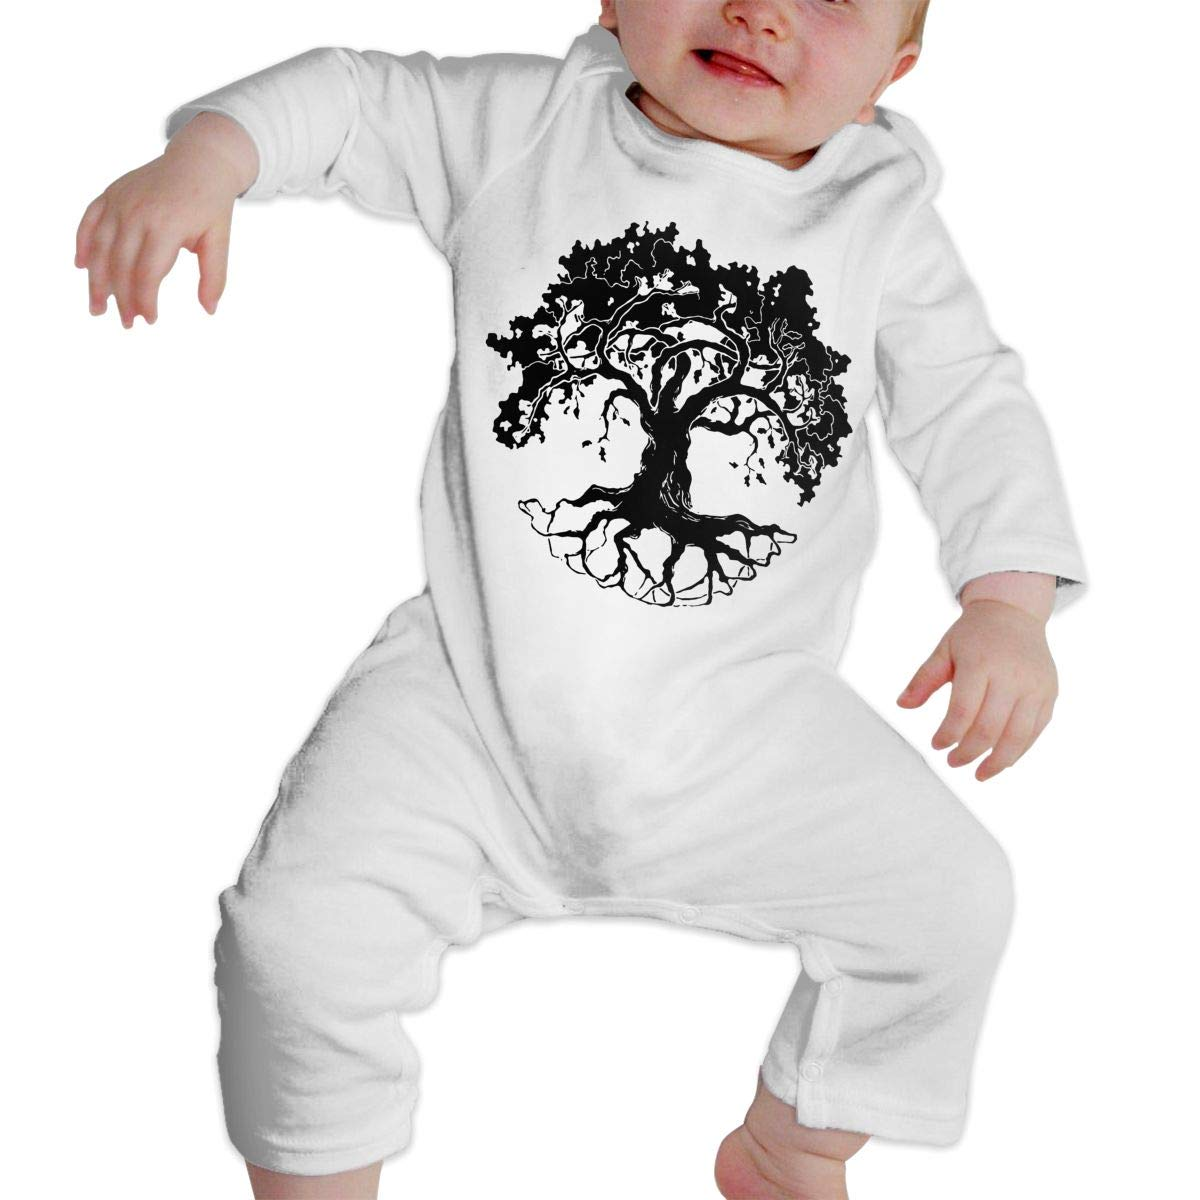 Fashion Oak Tree Playsuit U99oi-9 Long Sleeve Cotton Bodysuit for Unisex Baby